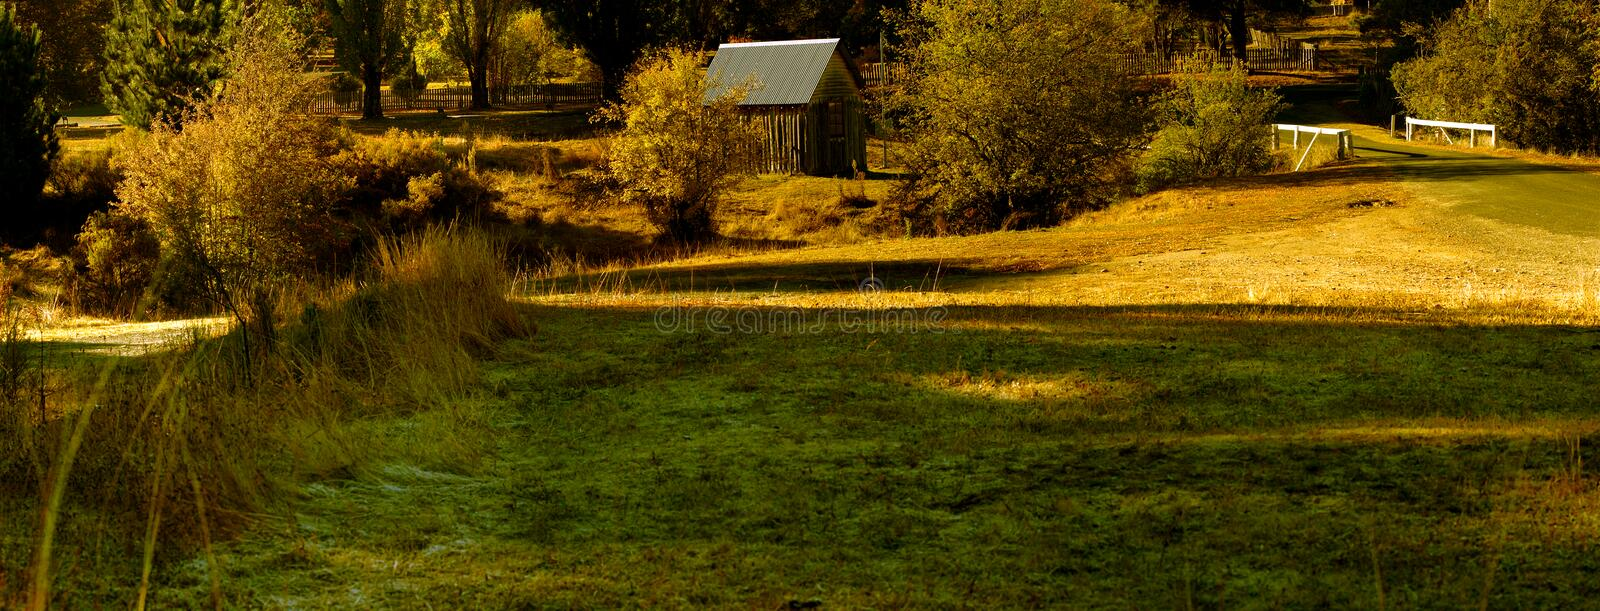 Hill End nsw. Well-preserved, former Bathurst gold-mining town is set in an isolated valley surrounded by mountains and gorges. The rugged scenery of its Country royalty free stock photography